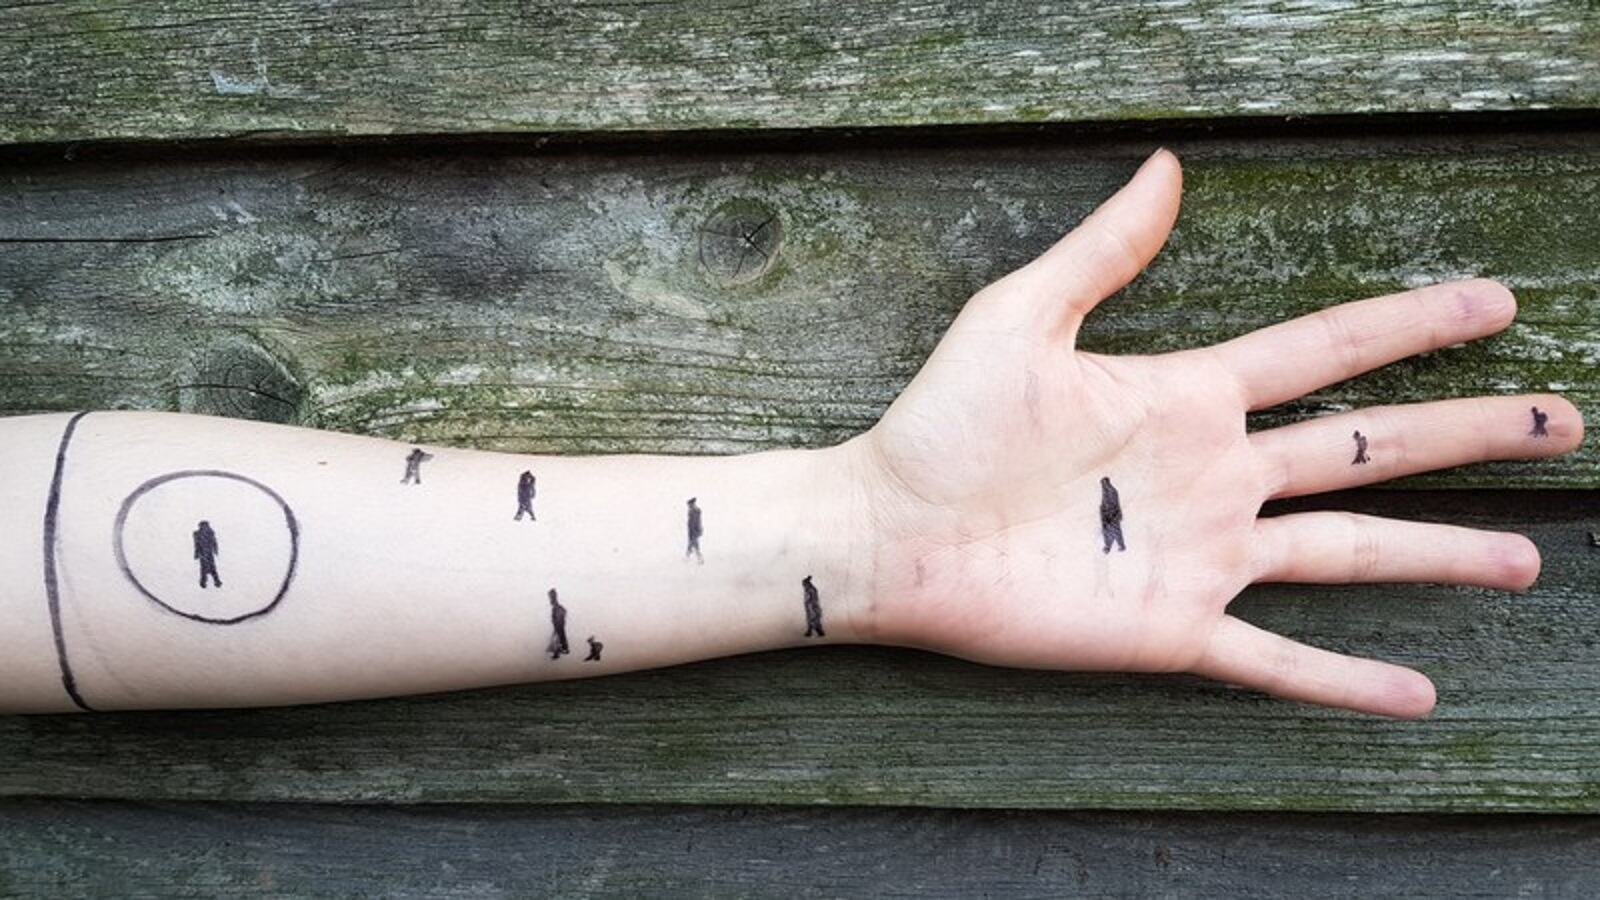 An arm and hand with small illustrations drawn on